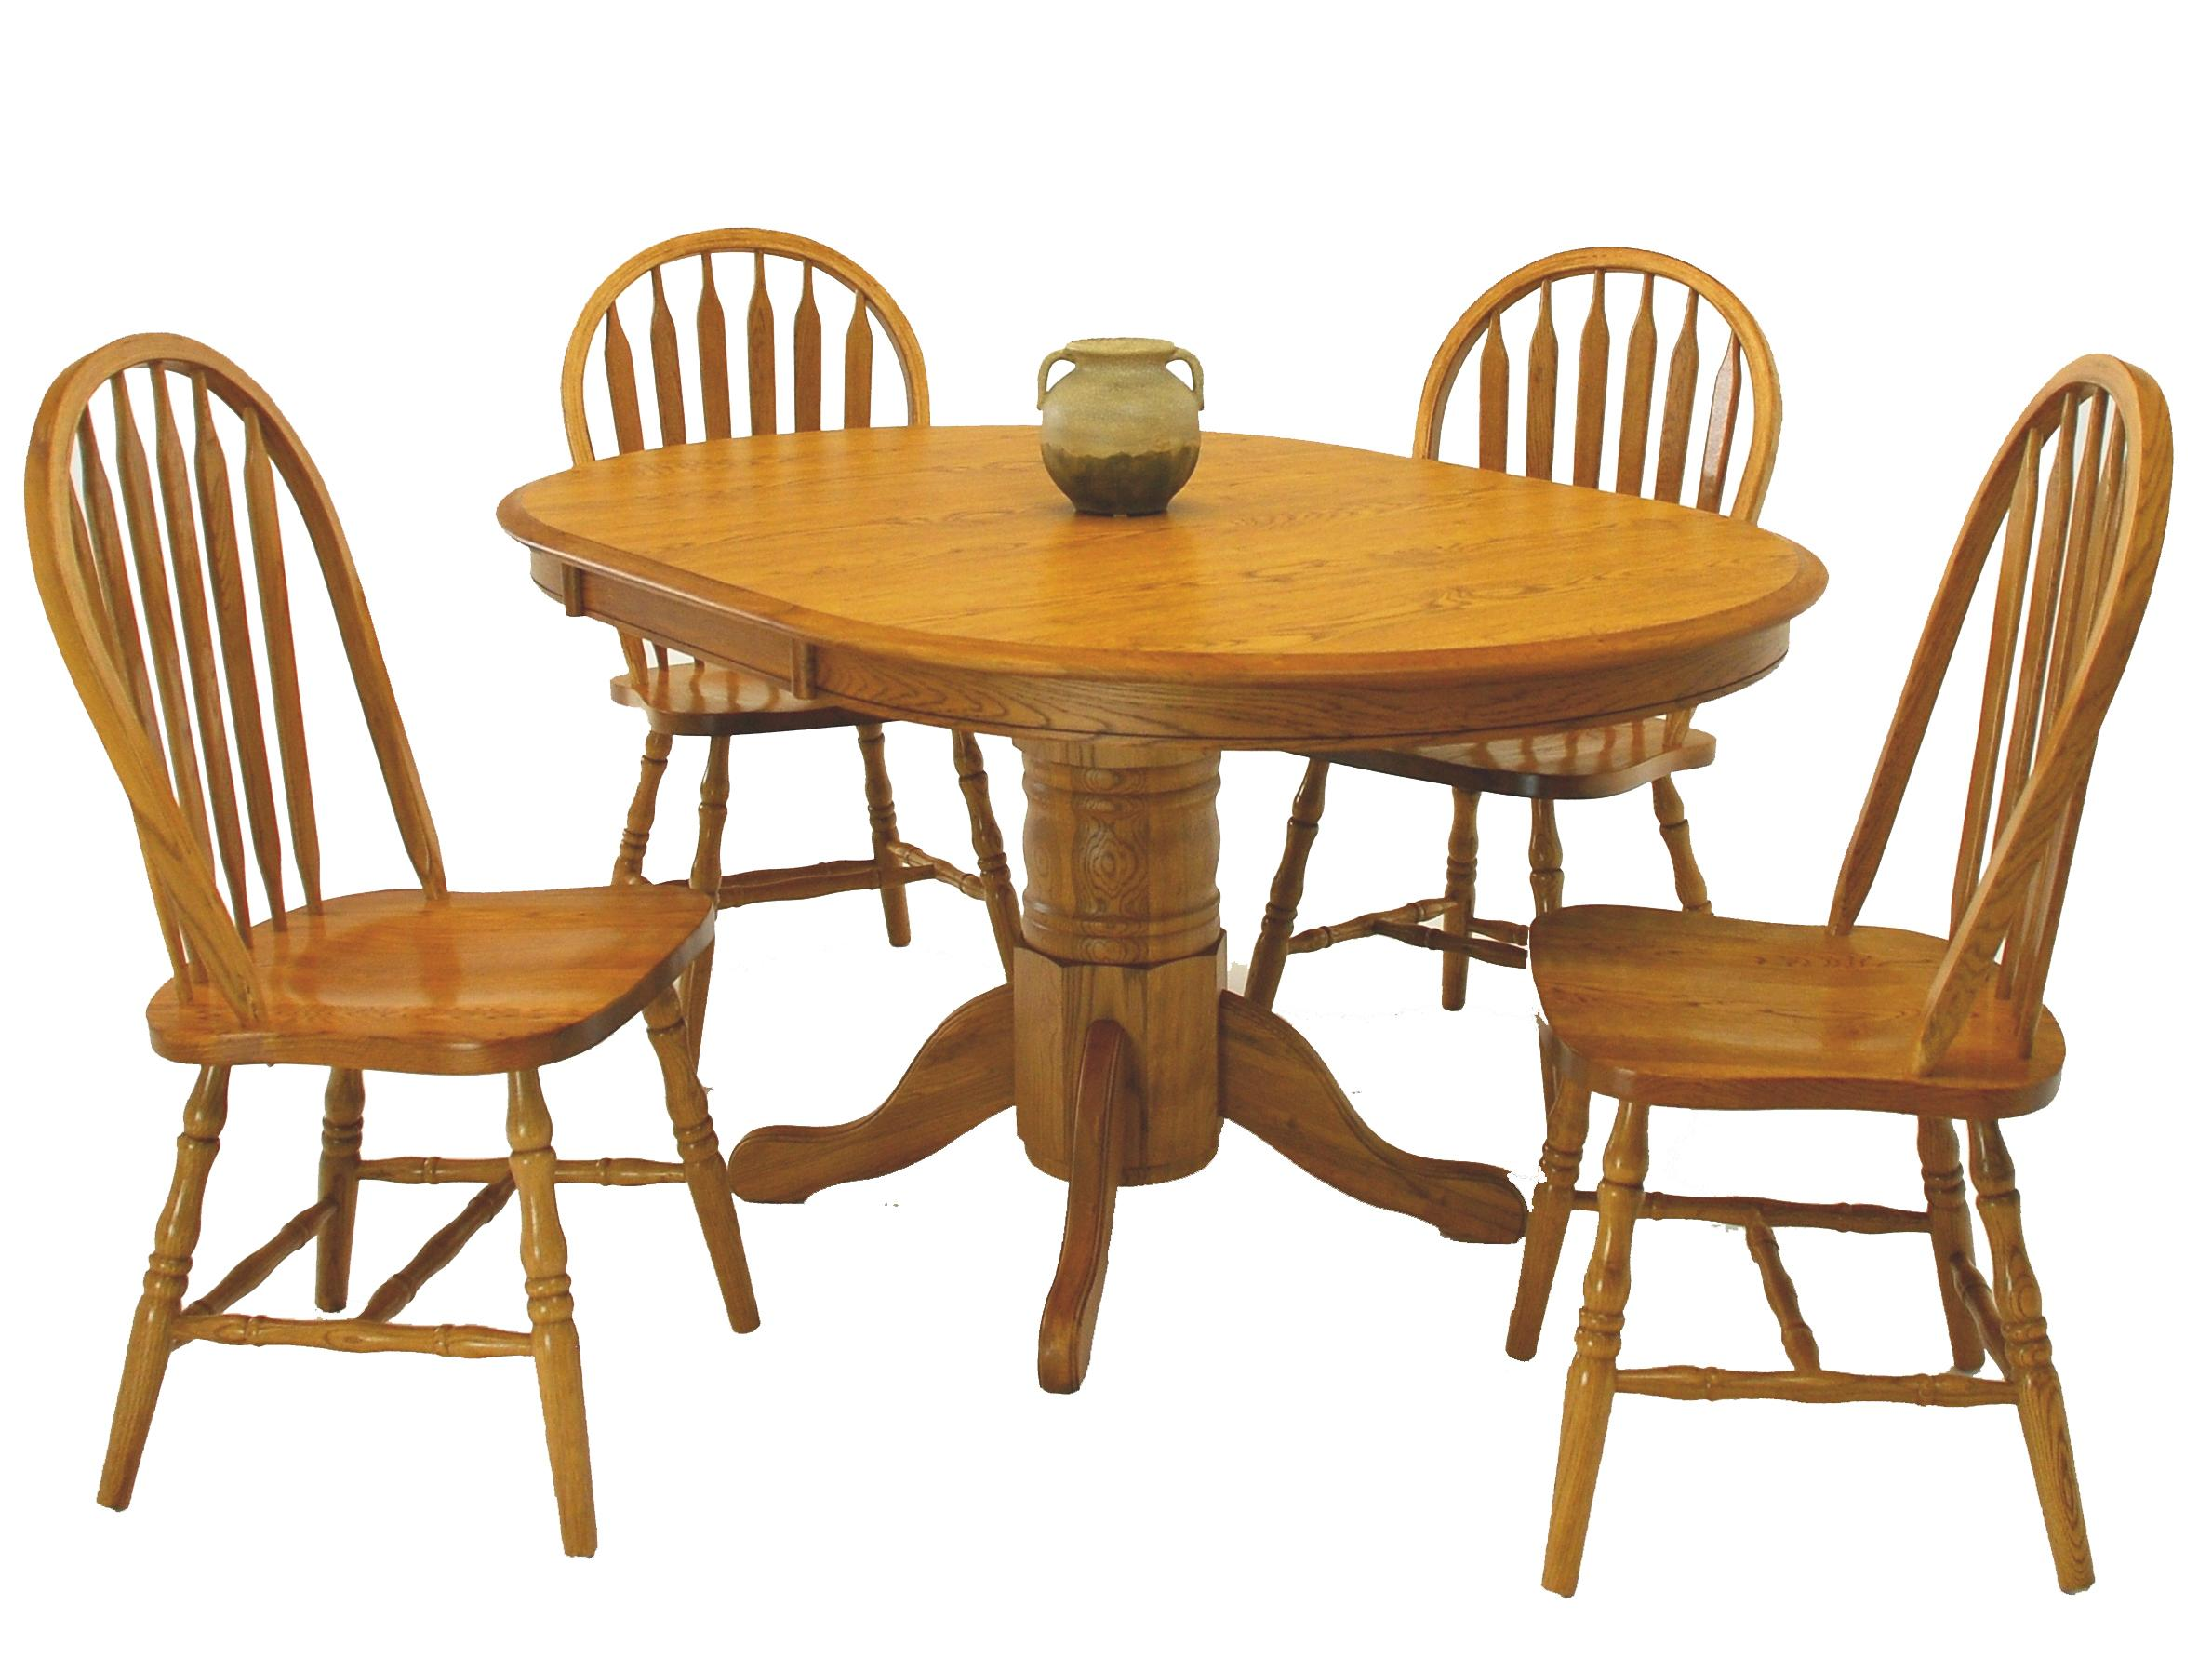 5-Piece Round Table & Side Chair Set